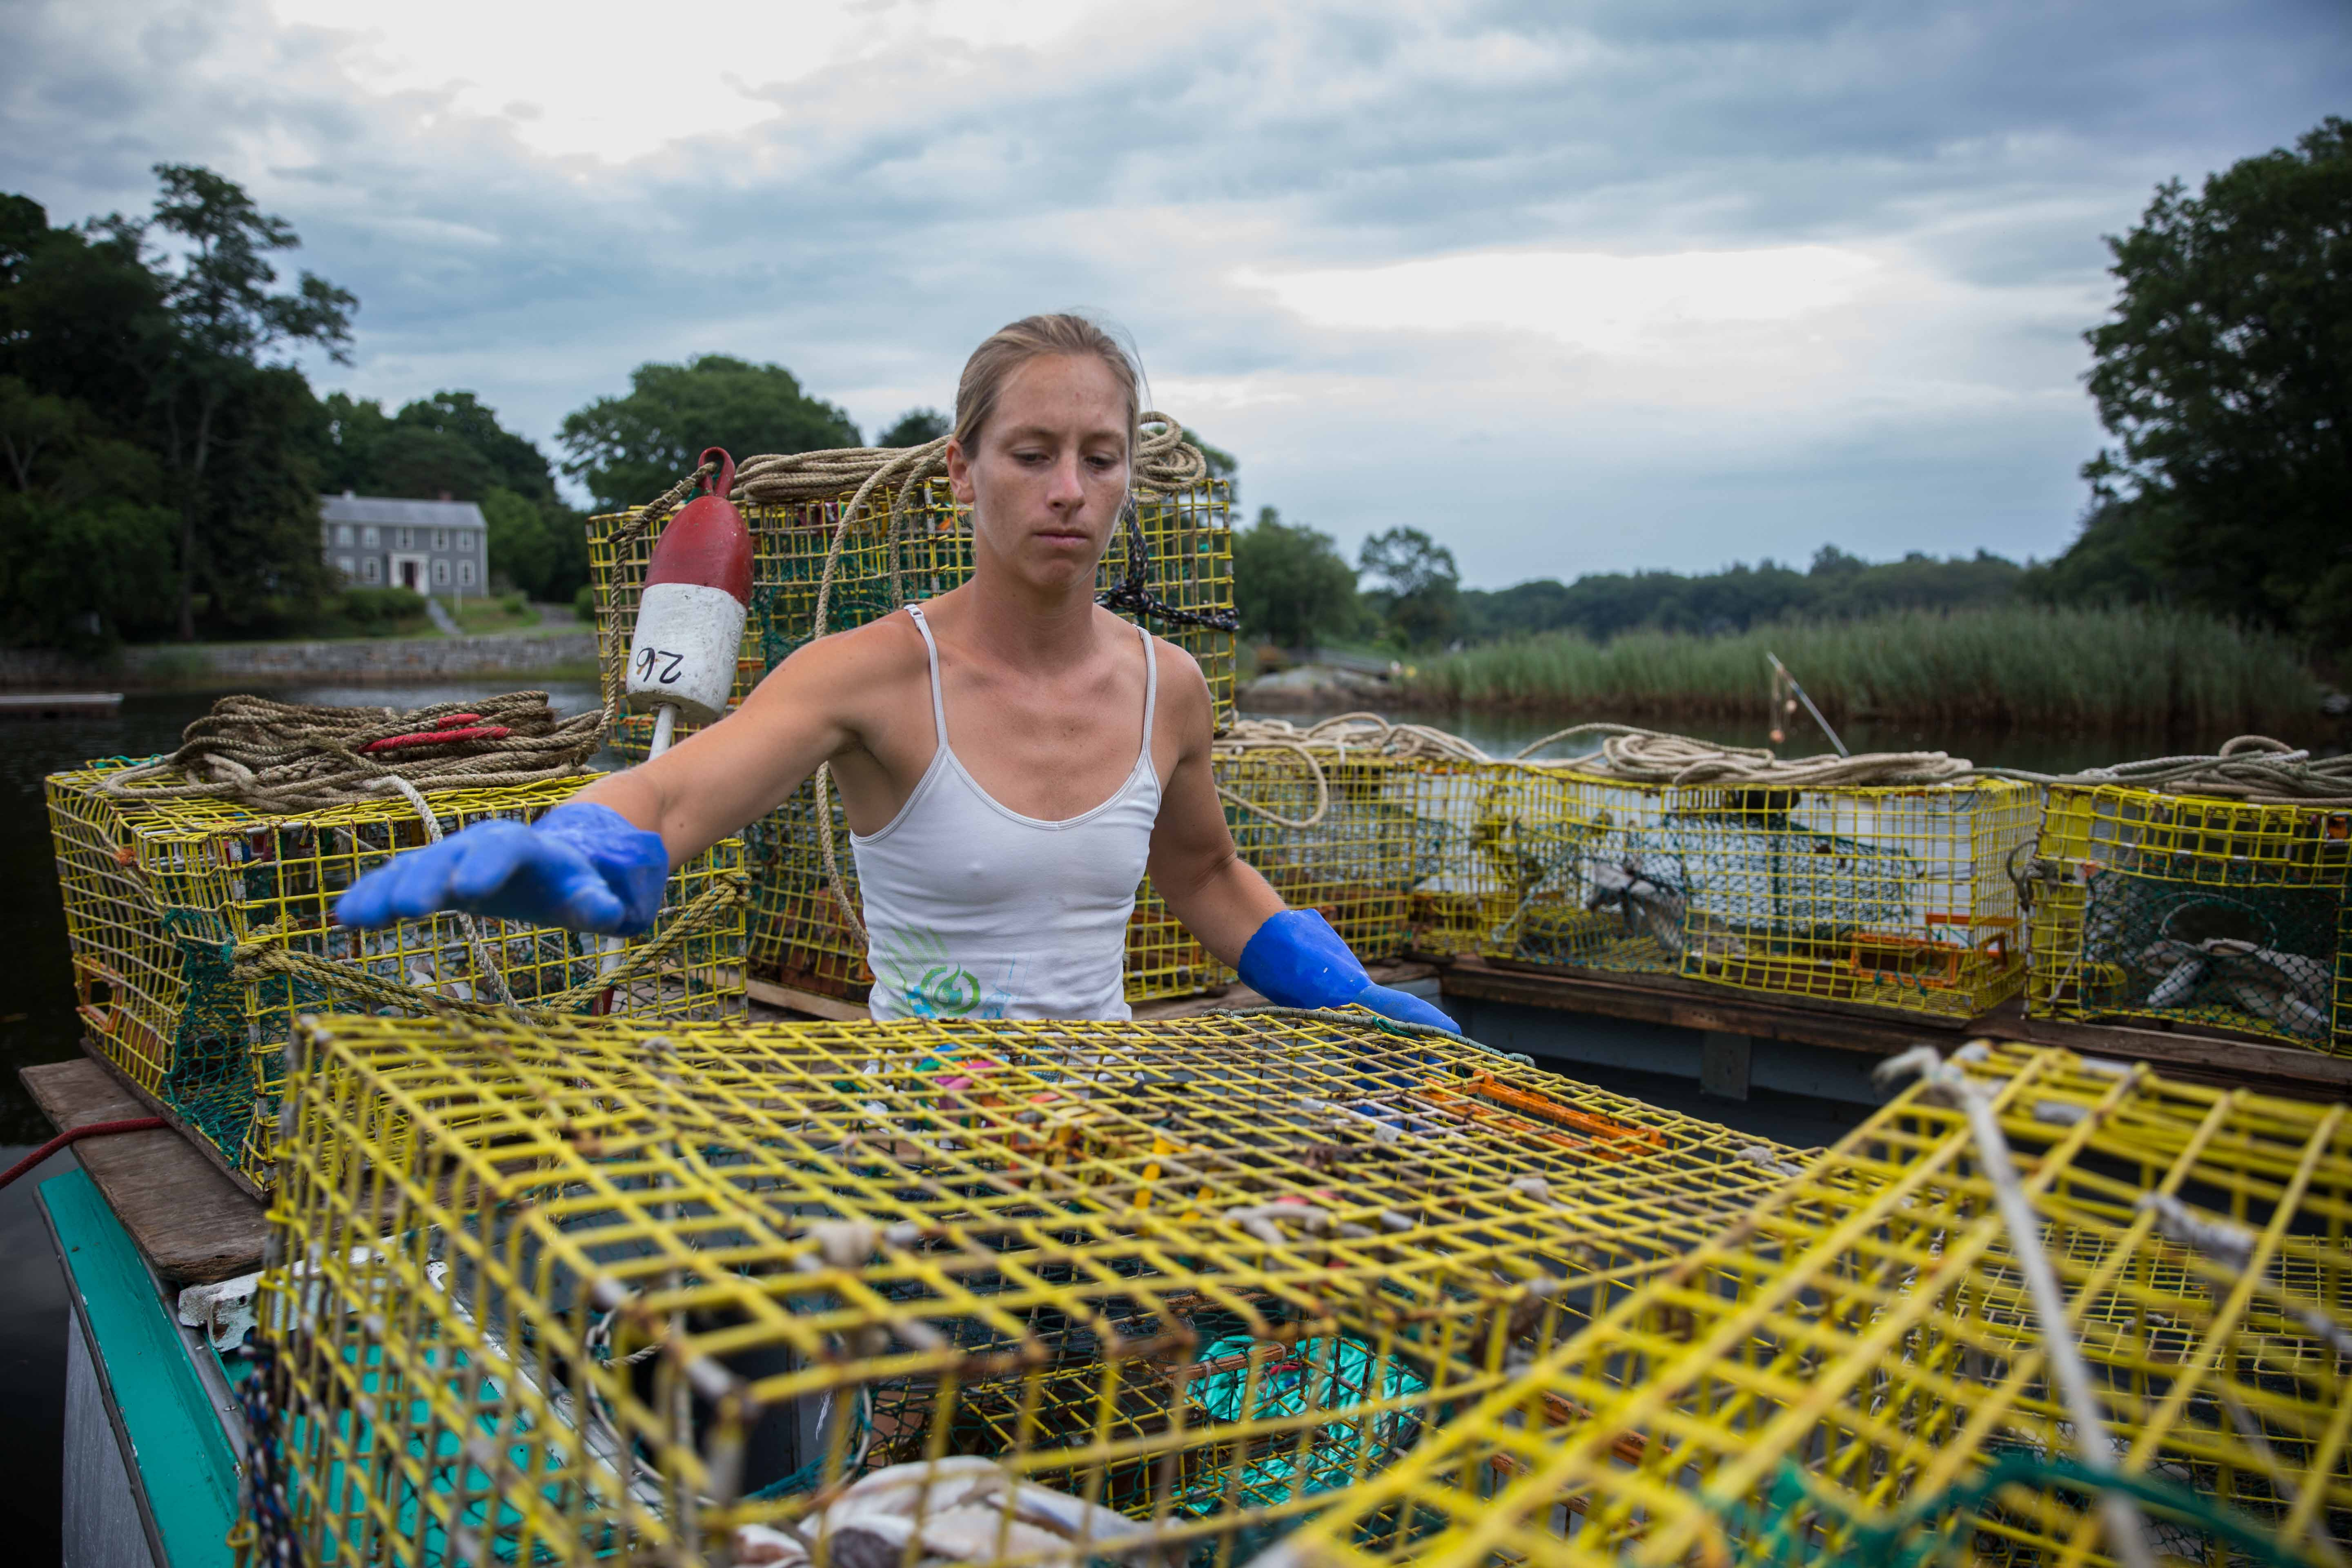 Rachel Munsell loads bait fish into lobster traps aboard the Loan Shark. The boat is docked in the Ipswich River estuary, part of the Great Marsh. Munsell spends six months of the year lobstering with her stepfather, who owns the boat. (Photo by Coco McCabe/GroundTruth)